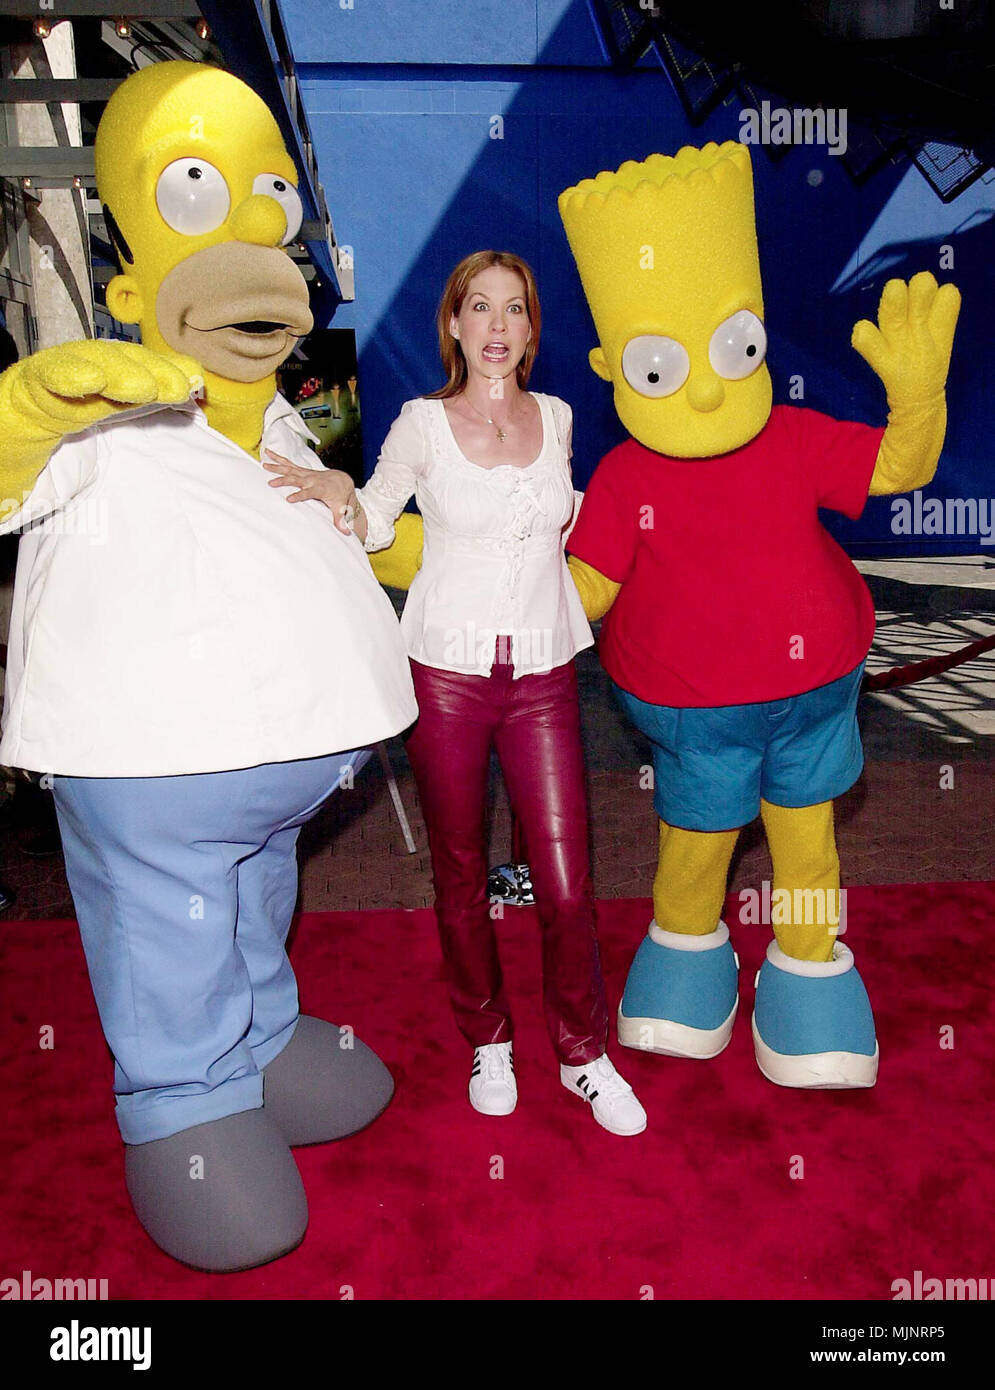 01 Oct 2000, Los Angeles, California, USA --- Homer Simpson, Jenna Elfman and Bart Simpson at the 3 Dimensions Imax Feature of the animated 'Cyberworld 3D'. 10.1.00-Los Angeles, CA --- ' Tsuni / USA 'Homer Simpson, Jenna Elfman and Bart Simpson Homer Simpson, Jenna Elfman and Bart Simpson inquiry tsuni@Gamma-USA.com - Stock Image